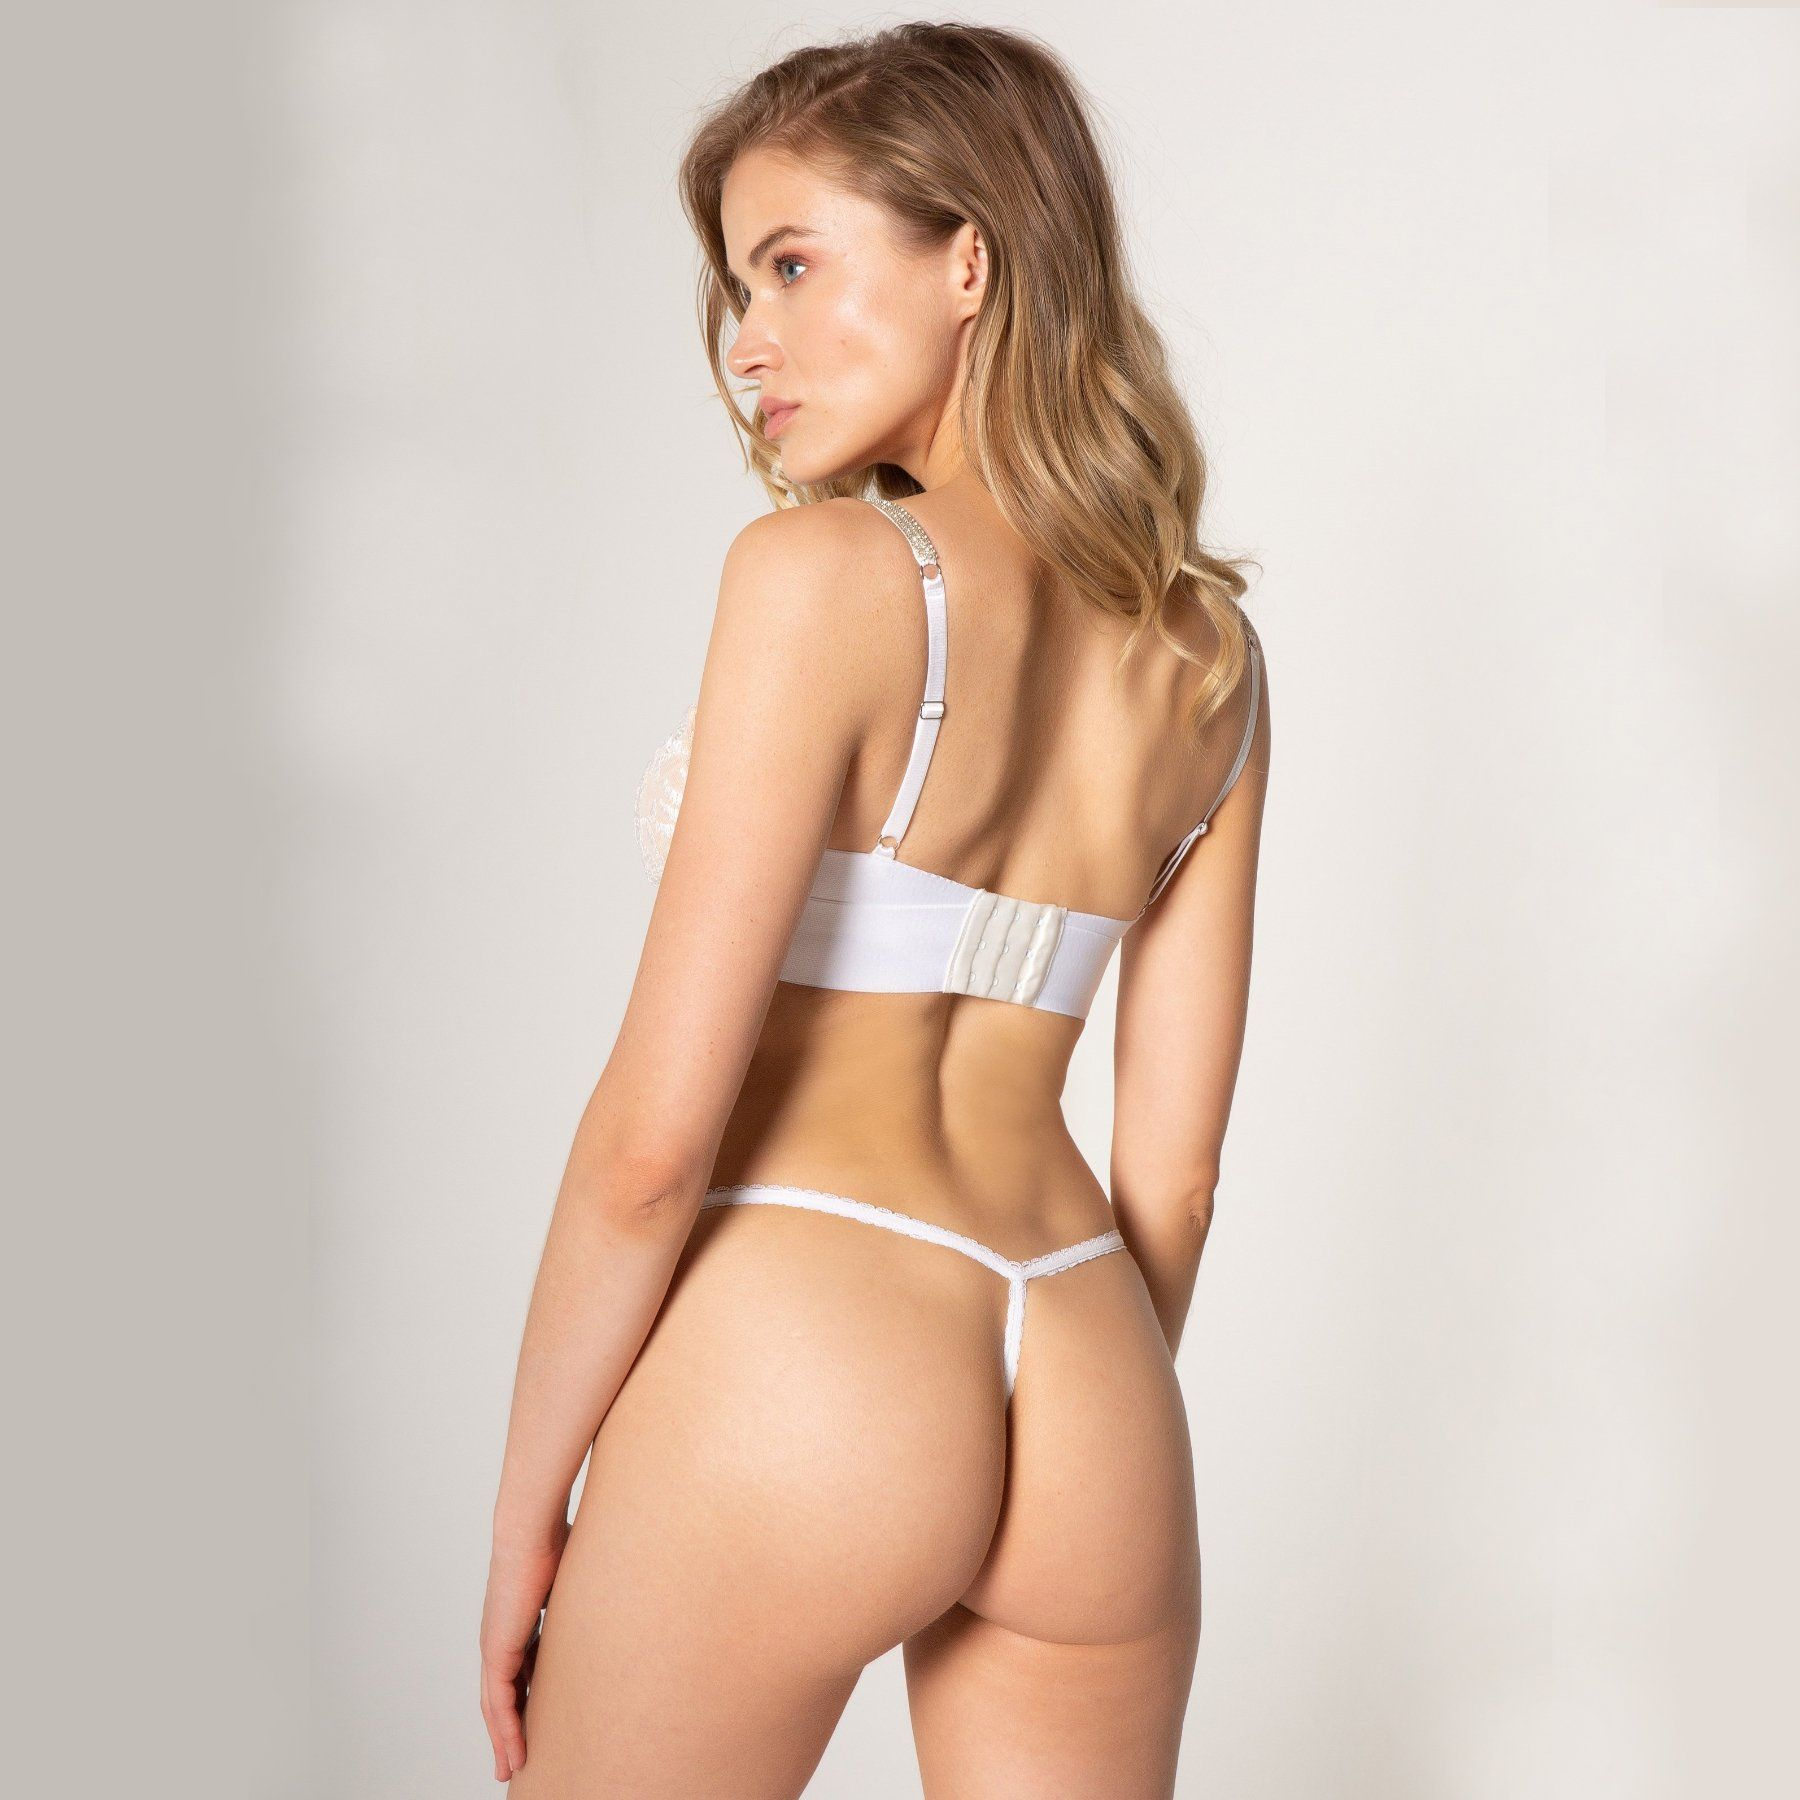 rear view of woman wearing white lace bra and thong